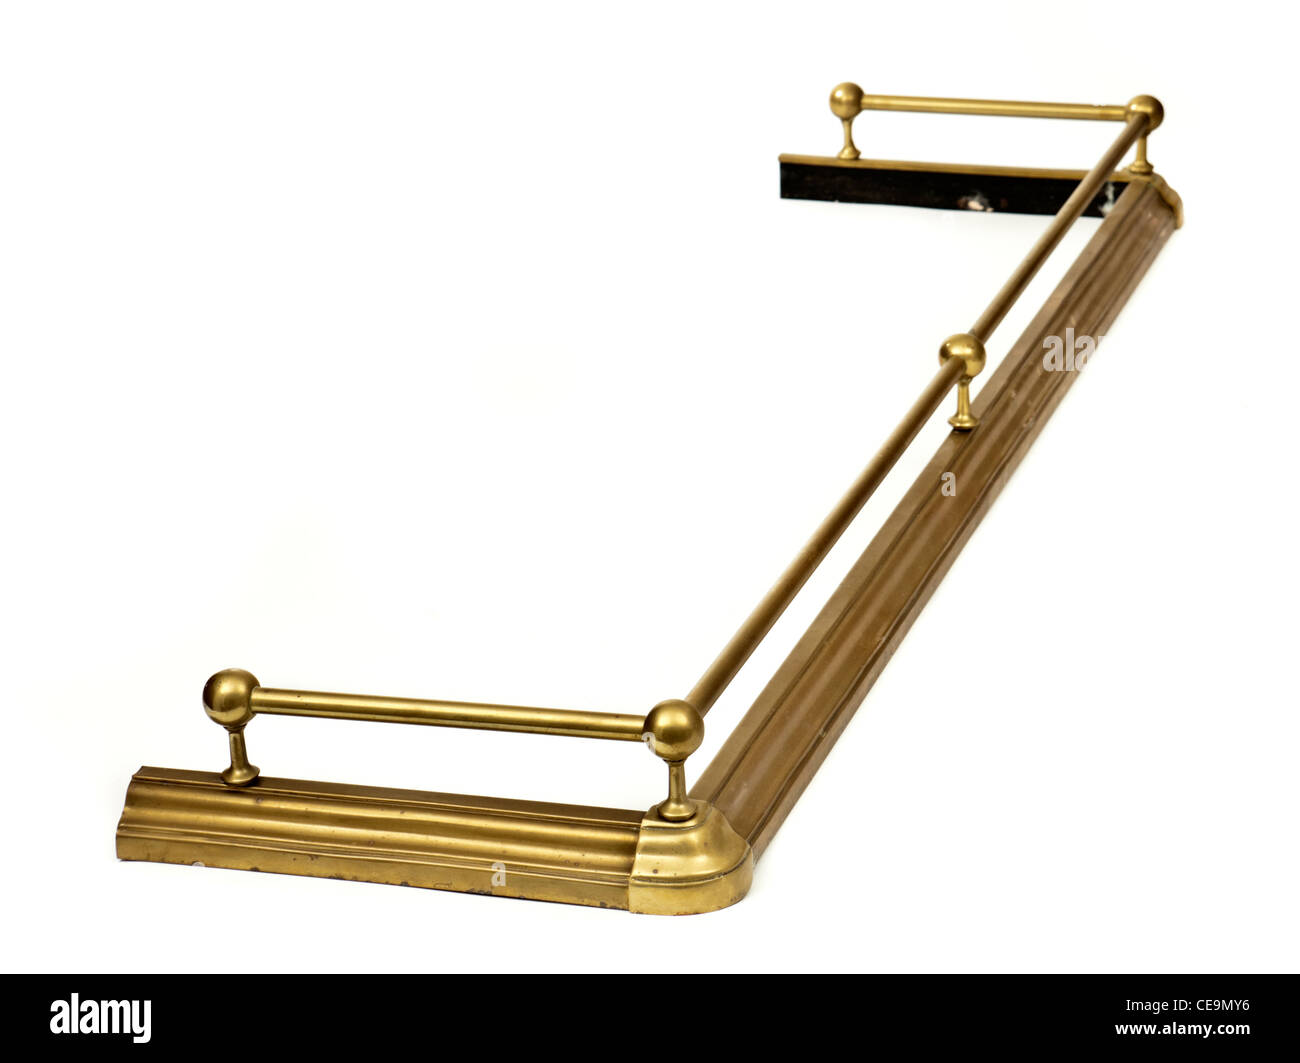 Antique Victorian Brass Fireplace Fender Stock Photo 43239930 Alamy